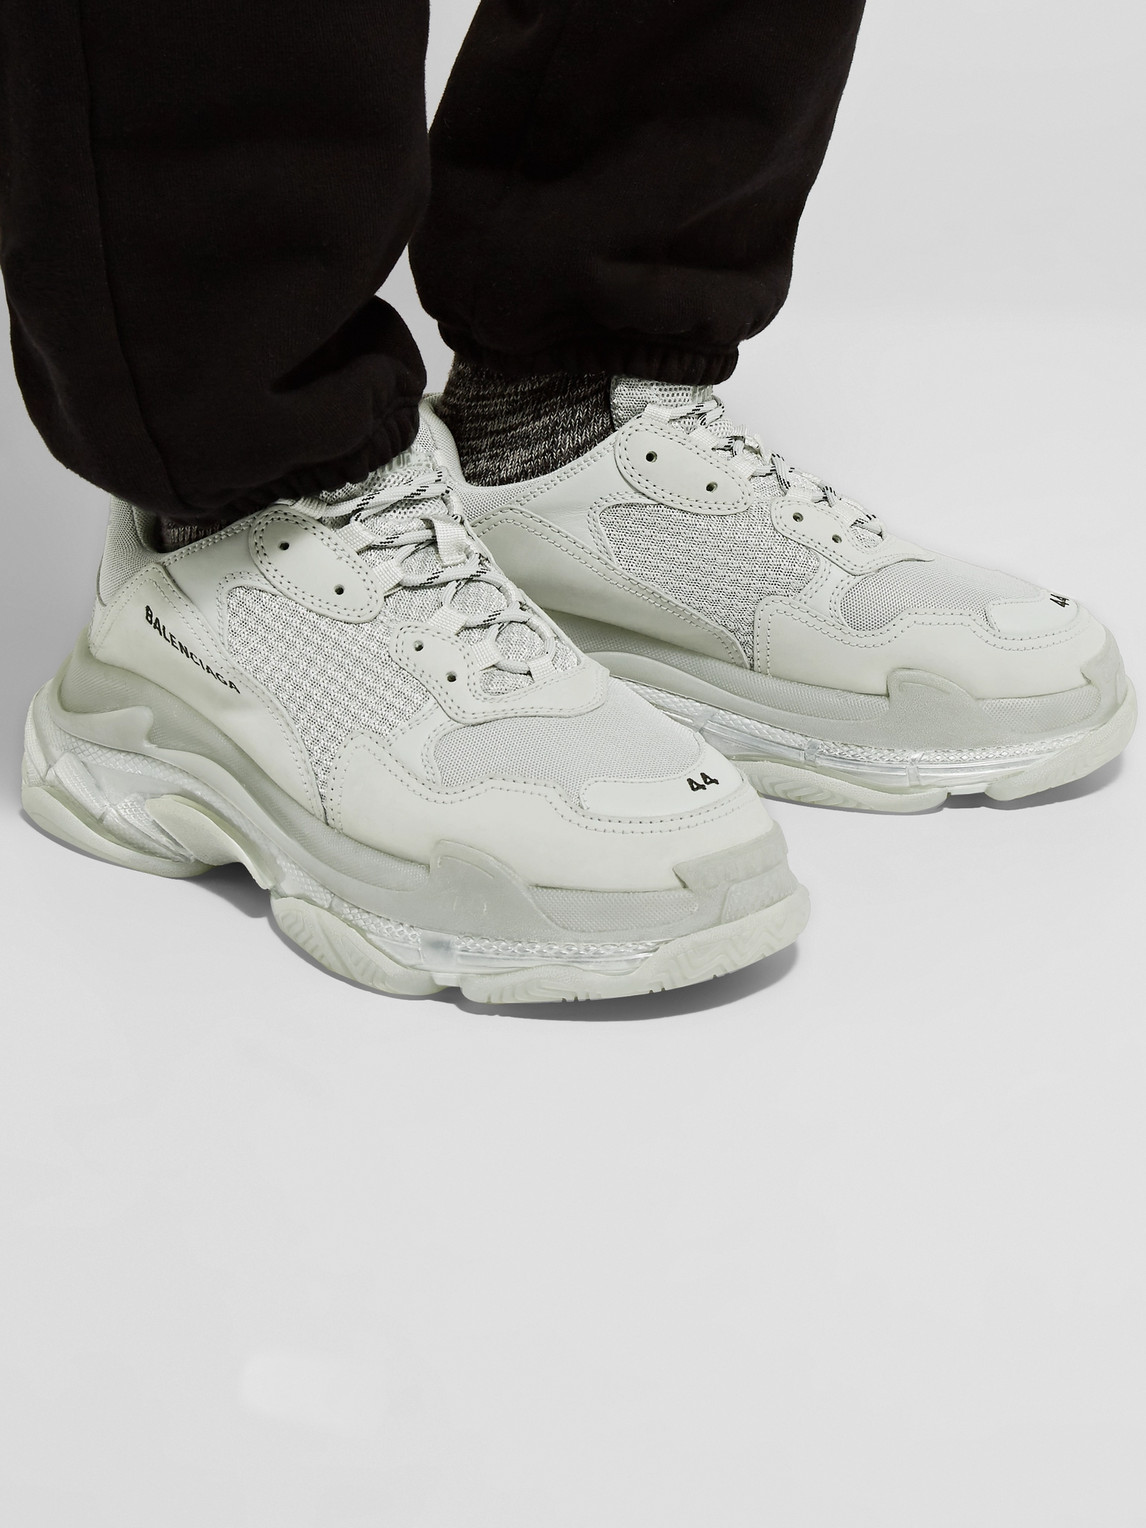 Balenciaga Sneakers TRIPLE S CLEAR SOLE MESH, NUBUCK AND LEATHER SNEAKERS